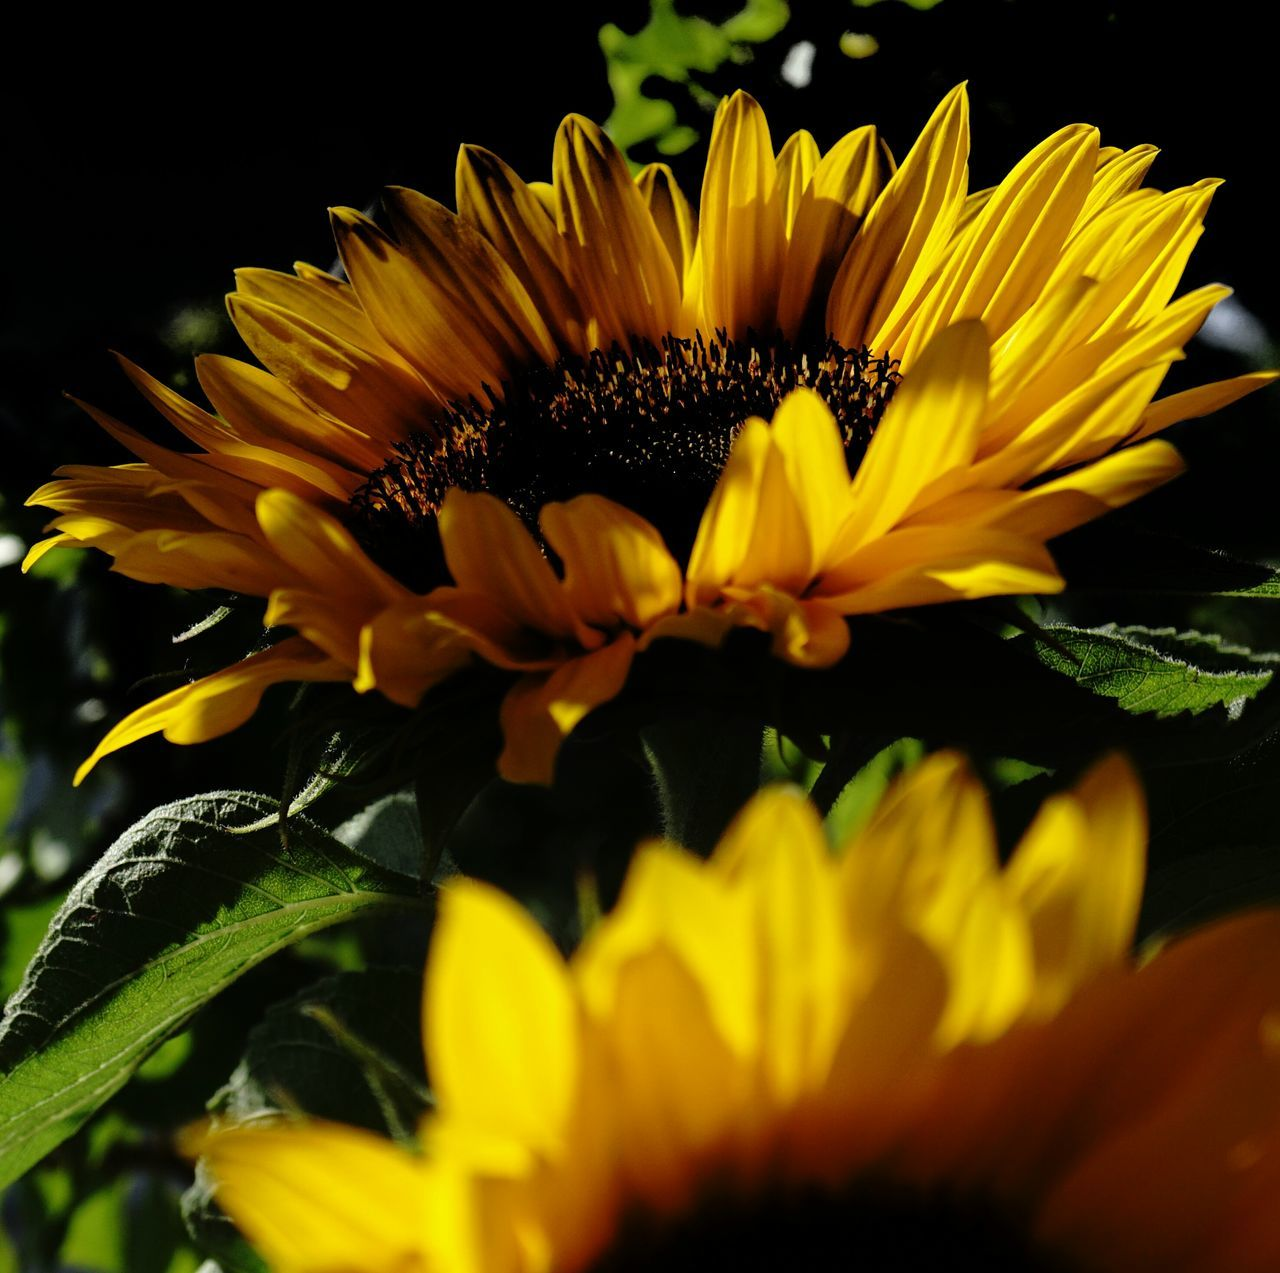 flower, petal, fragility, beauty in nature, flower head, freshness, yellow, nature, pollen, growth, plant, no people, sunflower, close-up, blooming, leaf, outdoors, day